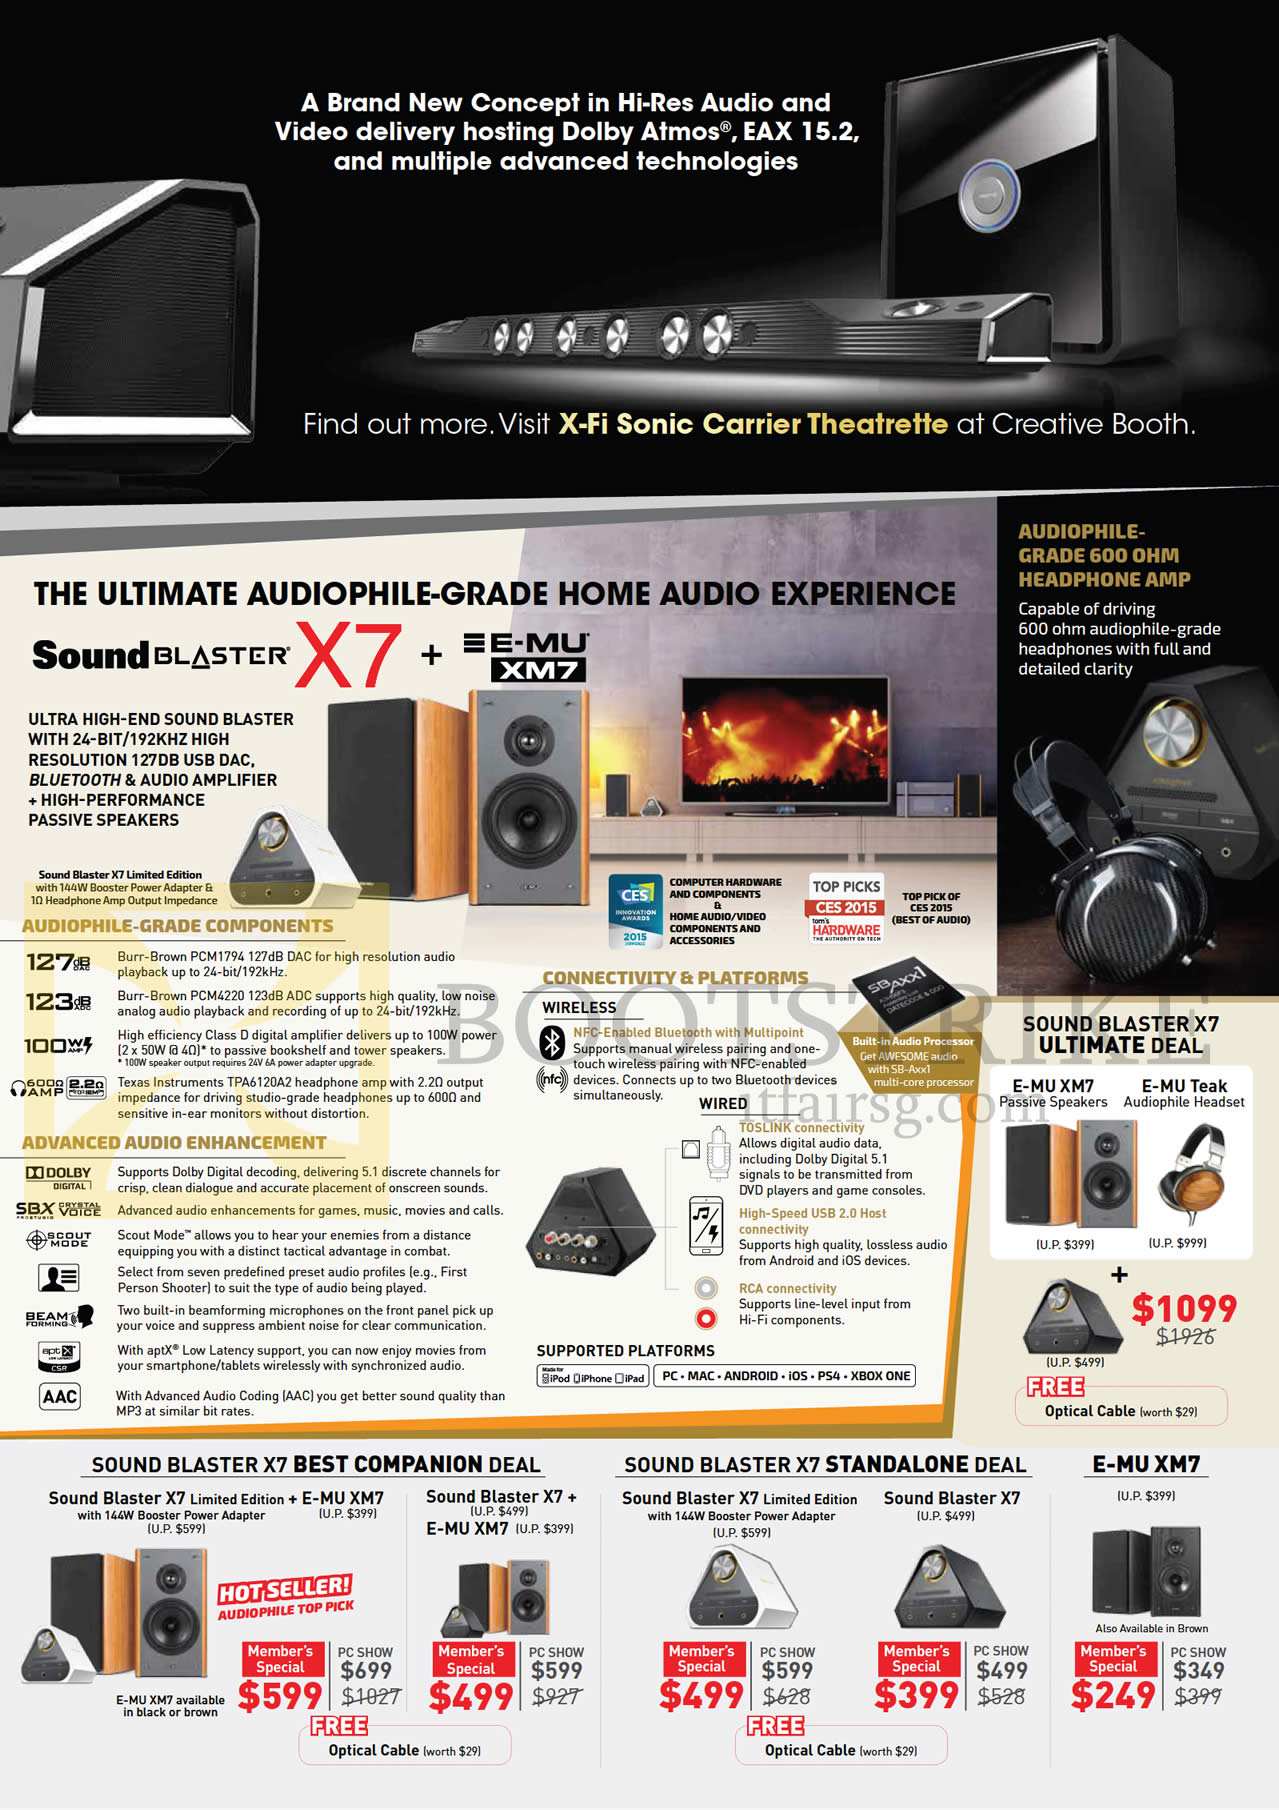 PC SHOW 2016 price list image brochure of Creative Speaker Deals Sound Blaster X7, X7 Best Companion, Stand Alone, E-MU XM7